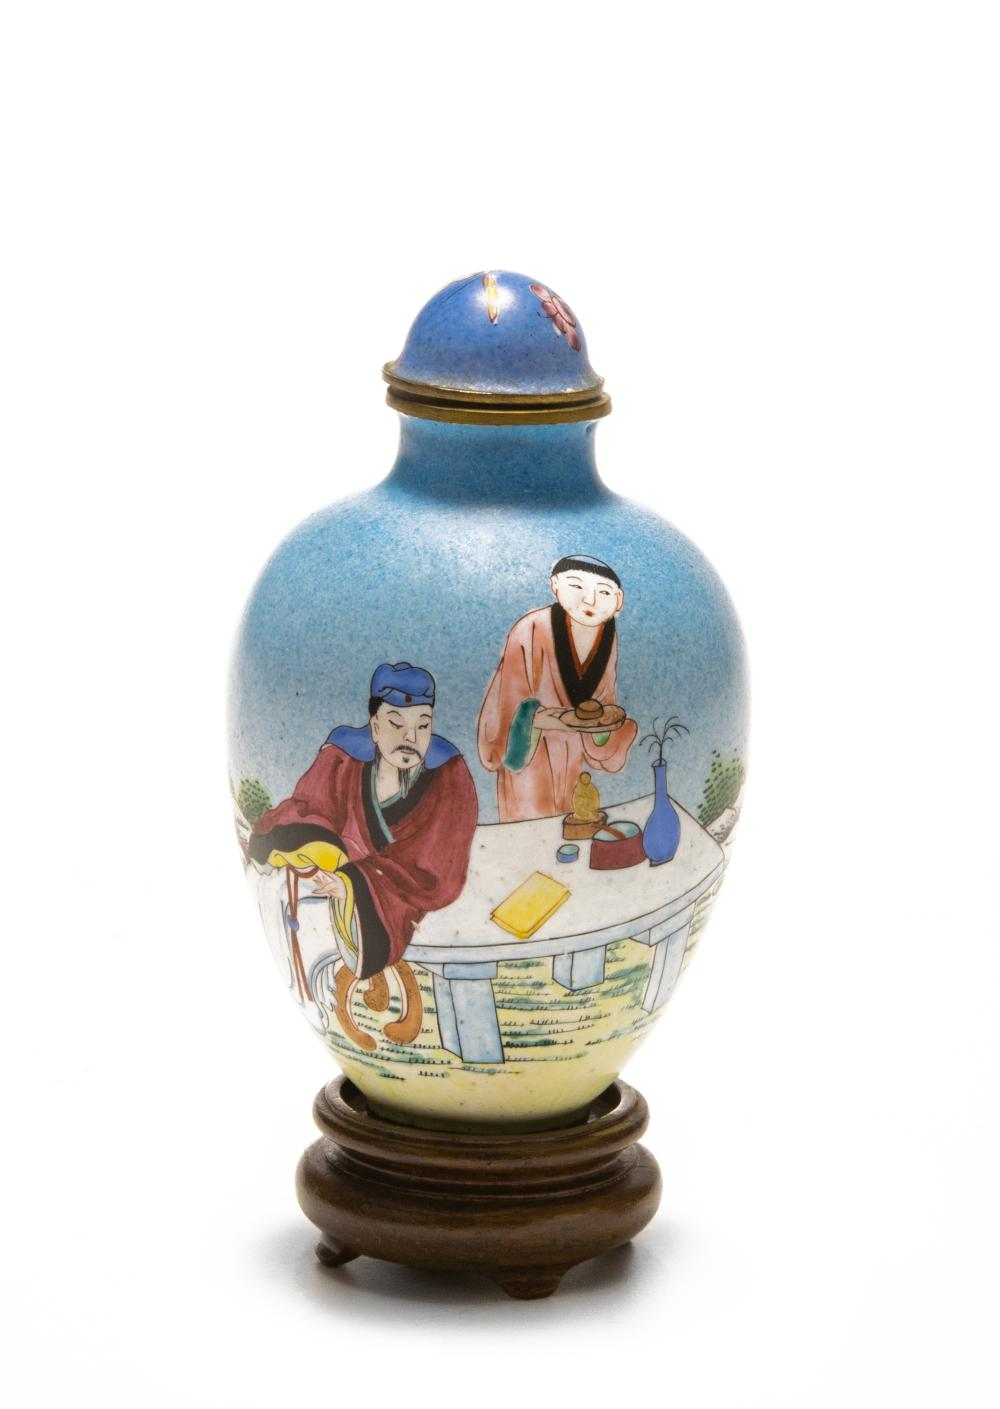 CHINESE ENAMEL SNUFF BOTTLE, 18-19TH CENTURY